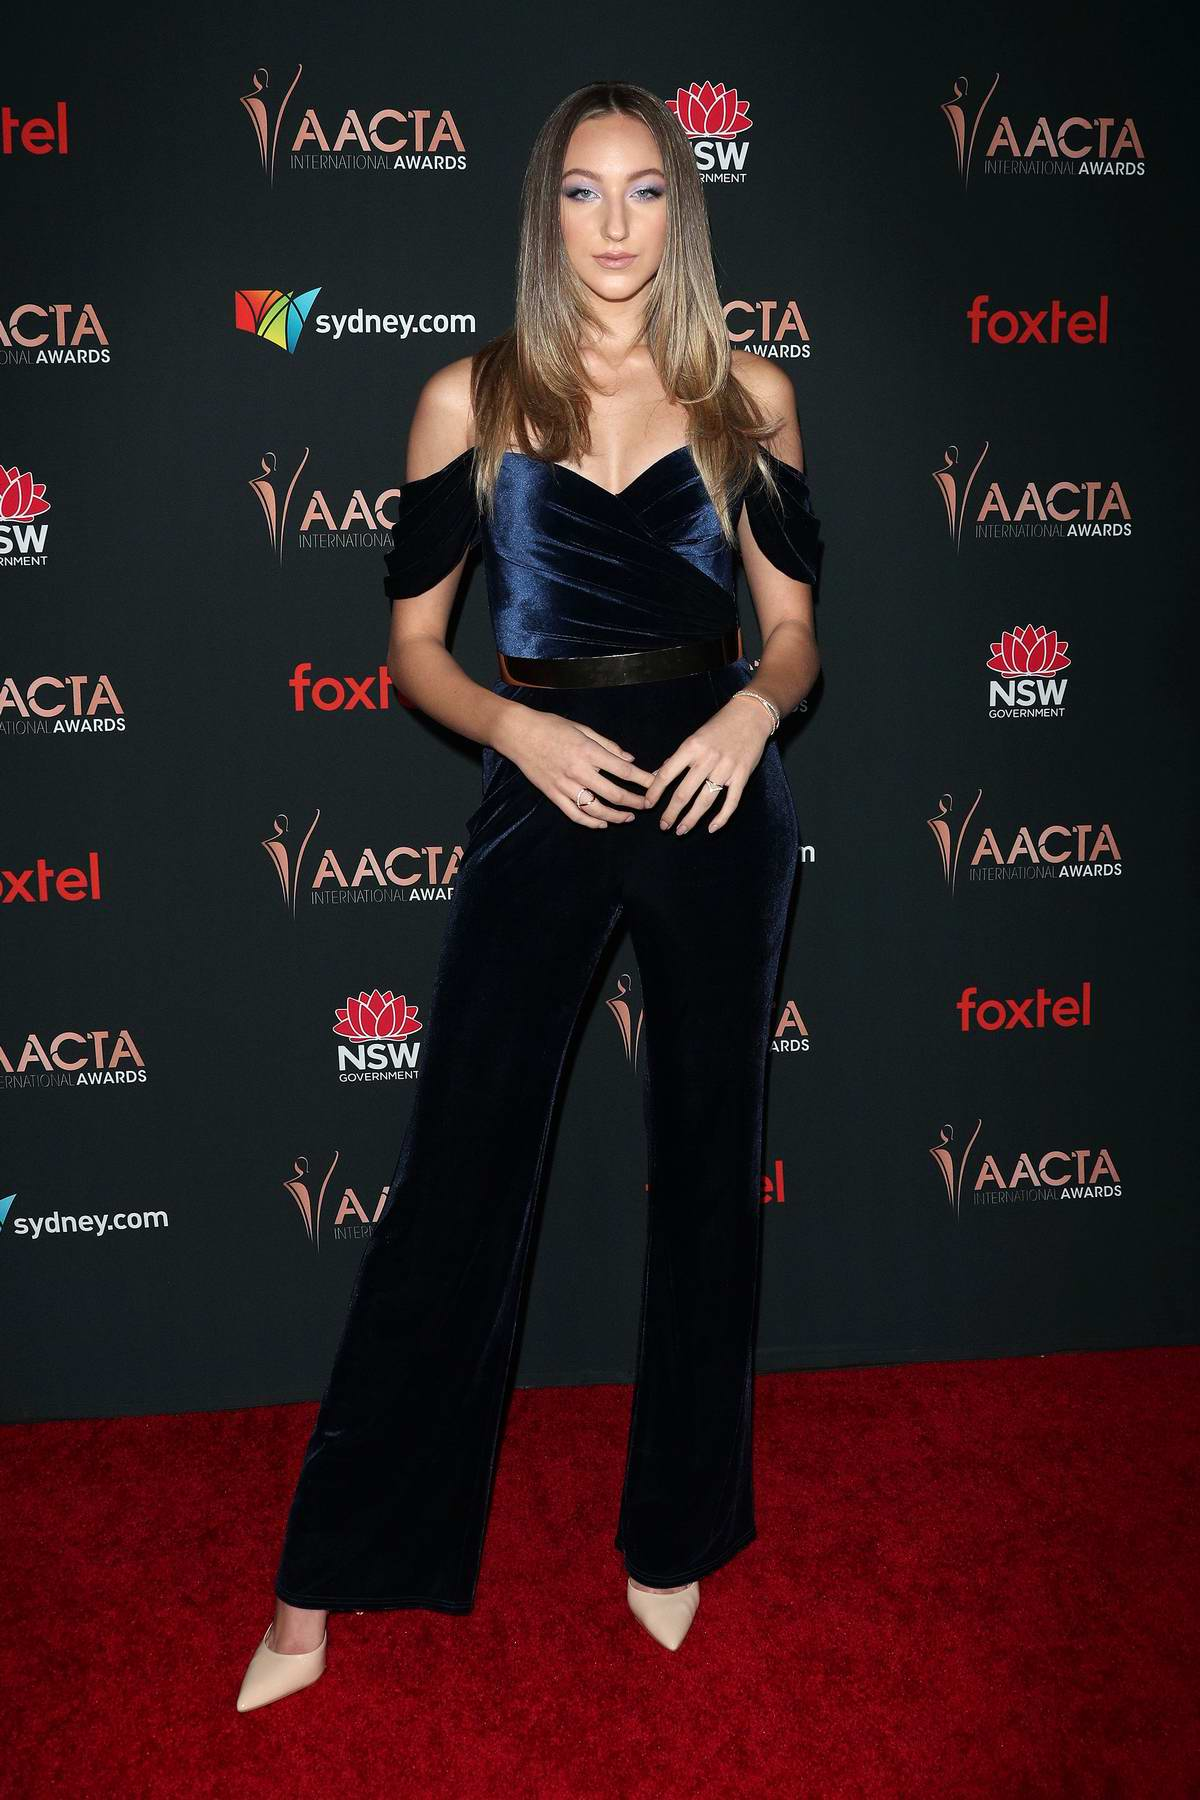 Ava Michelle attends the 9th Annual AACTA International Awards at the Mondrian Los Angeles